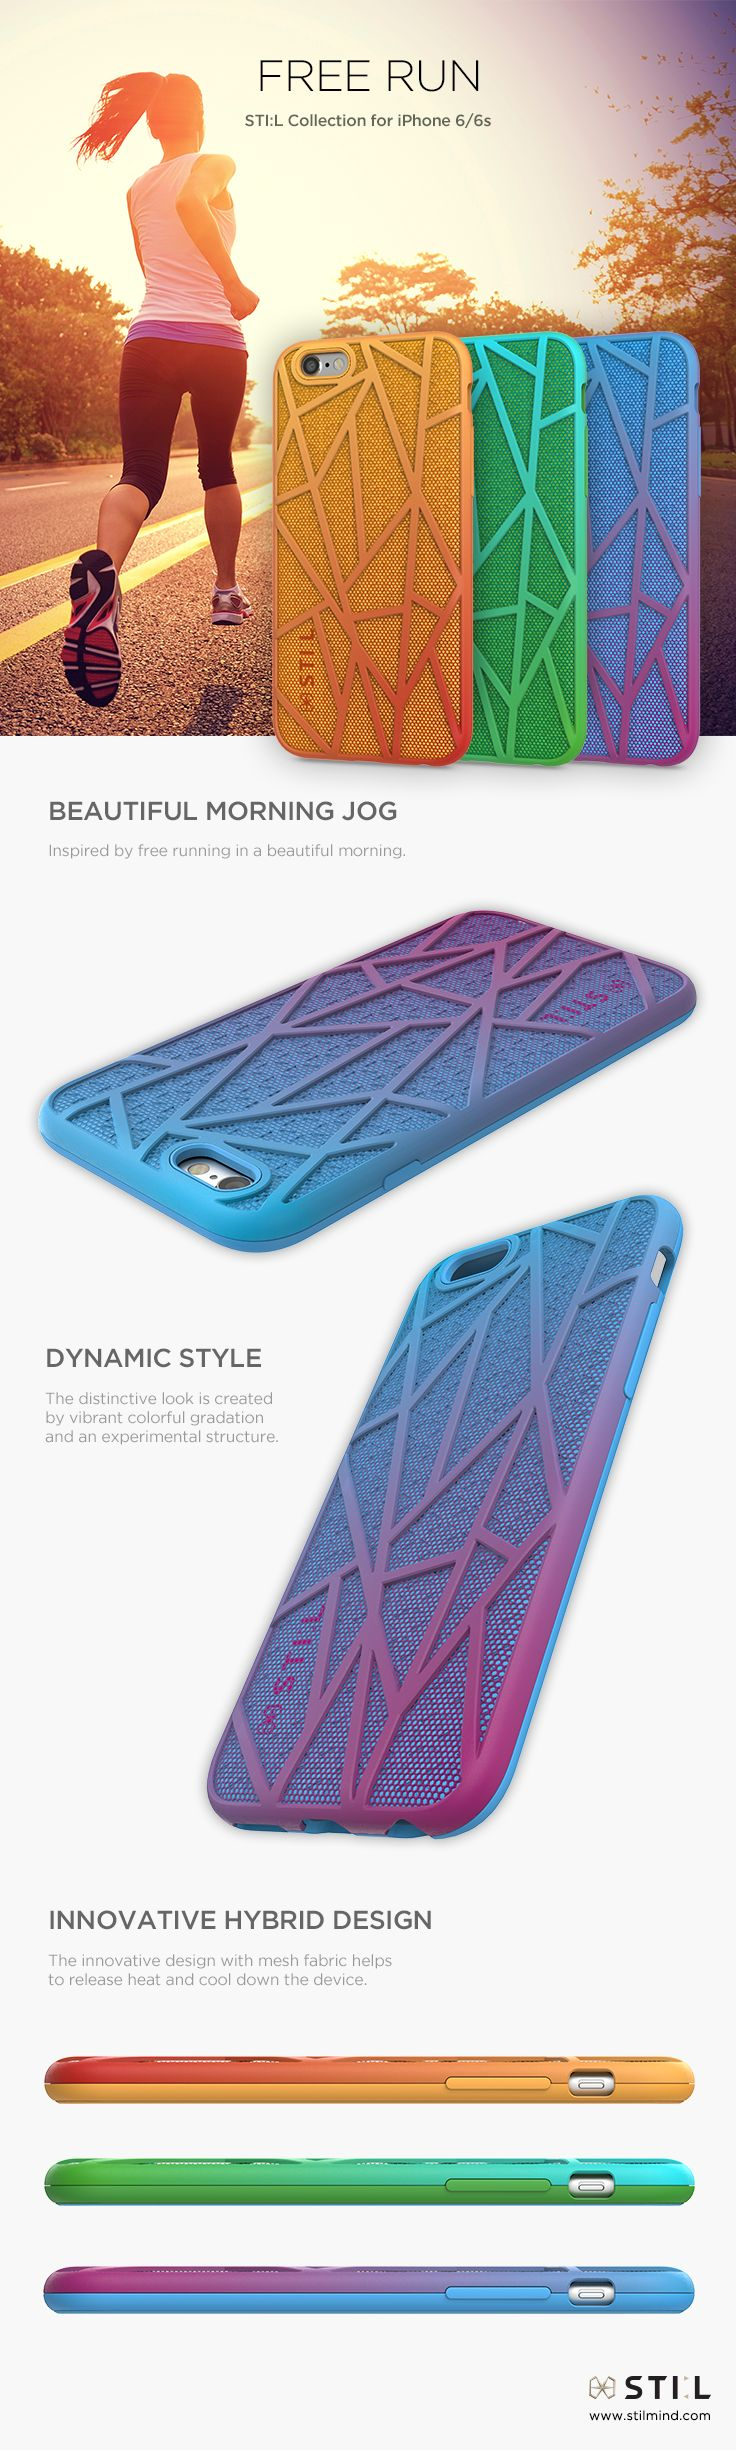 76 Best 3c Accesary Images On Pinterest Mobile Accessories Apple Iphone 6 Mplw Hybrid Film Free Run Dynamic Running In A Beautiful Morning Available Green Purple